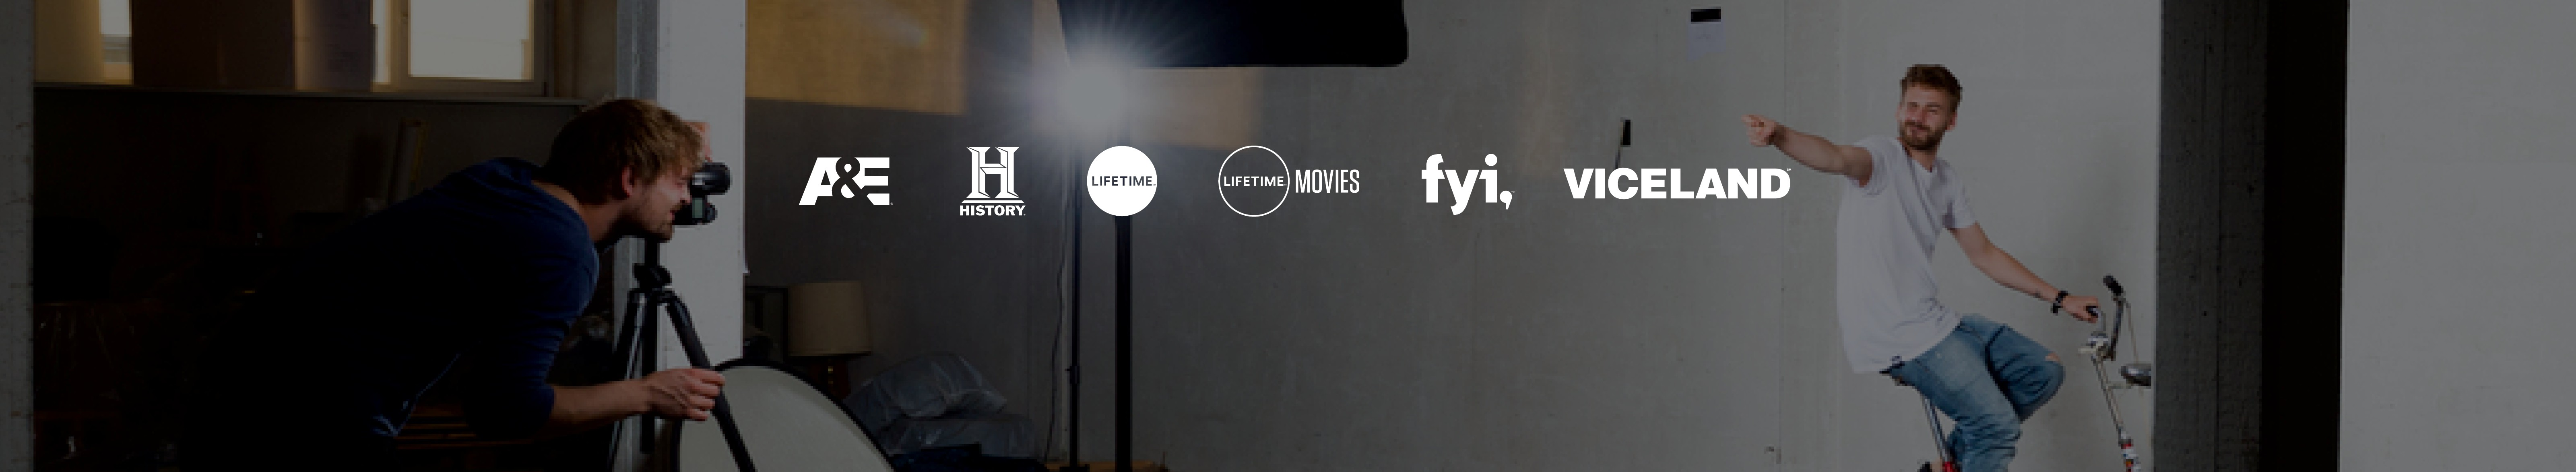 what is fyi network channel